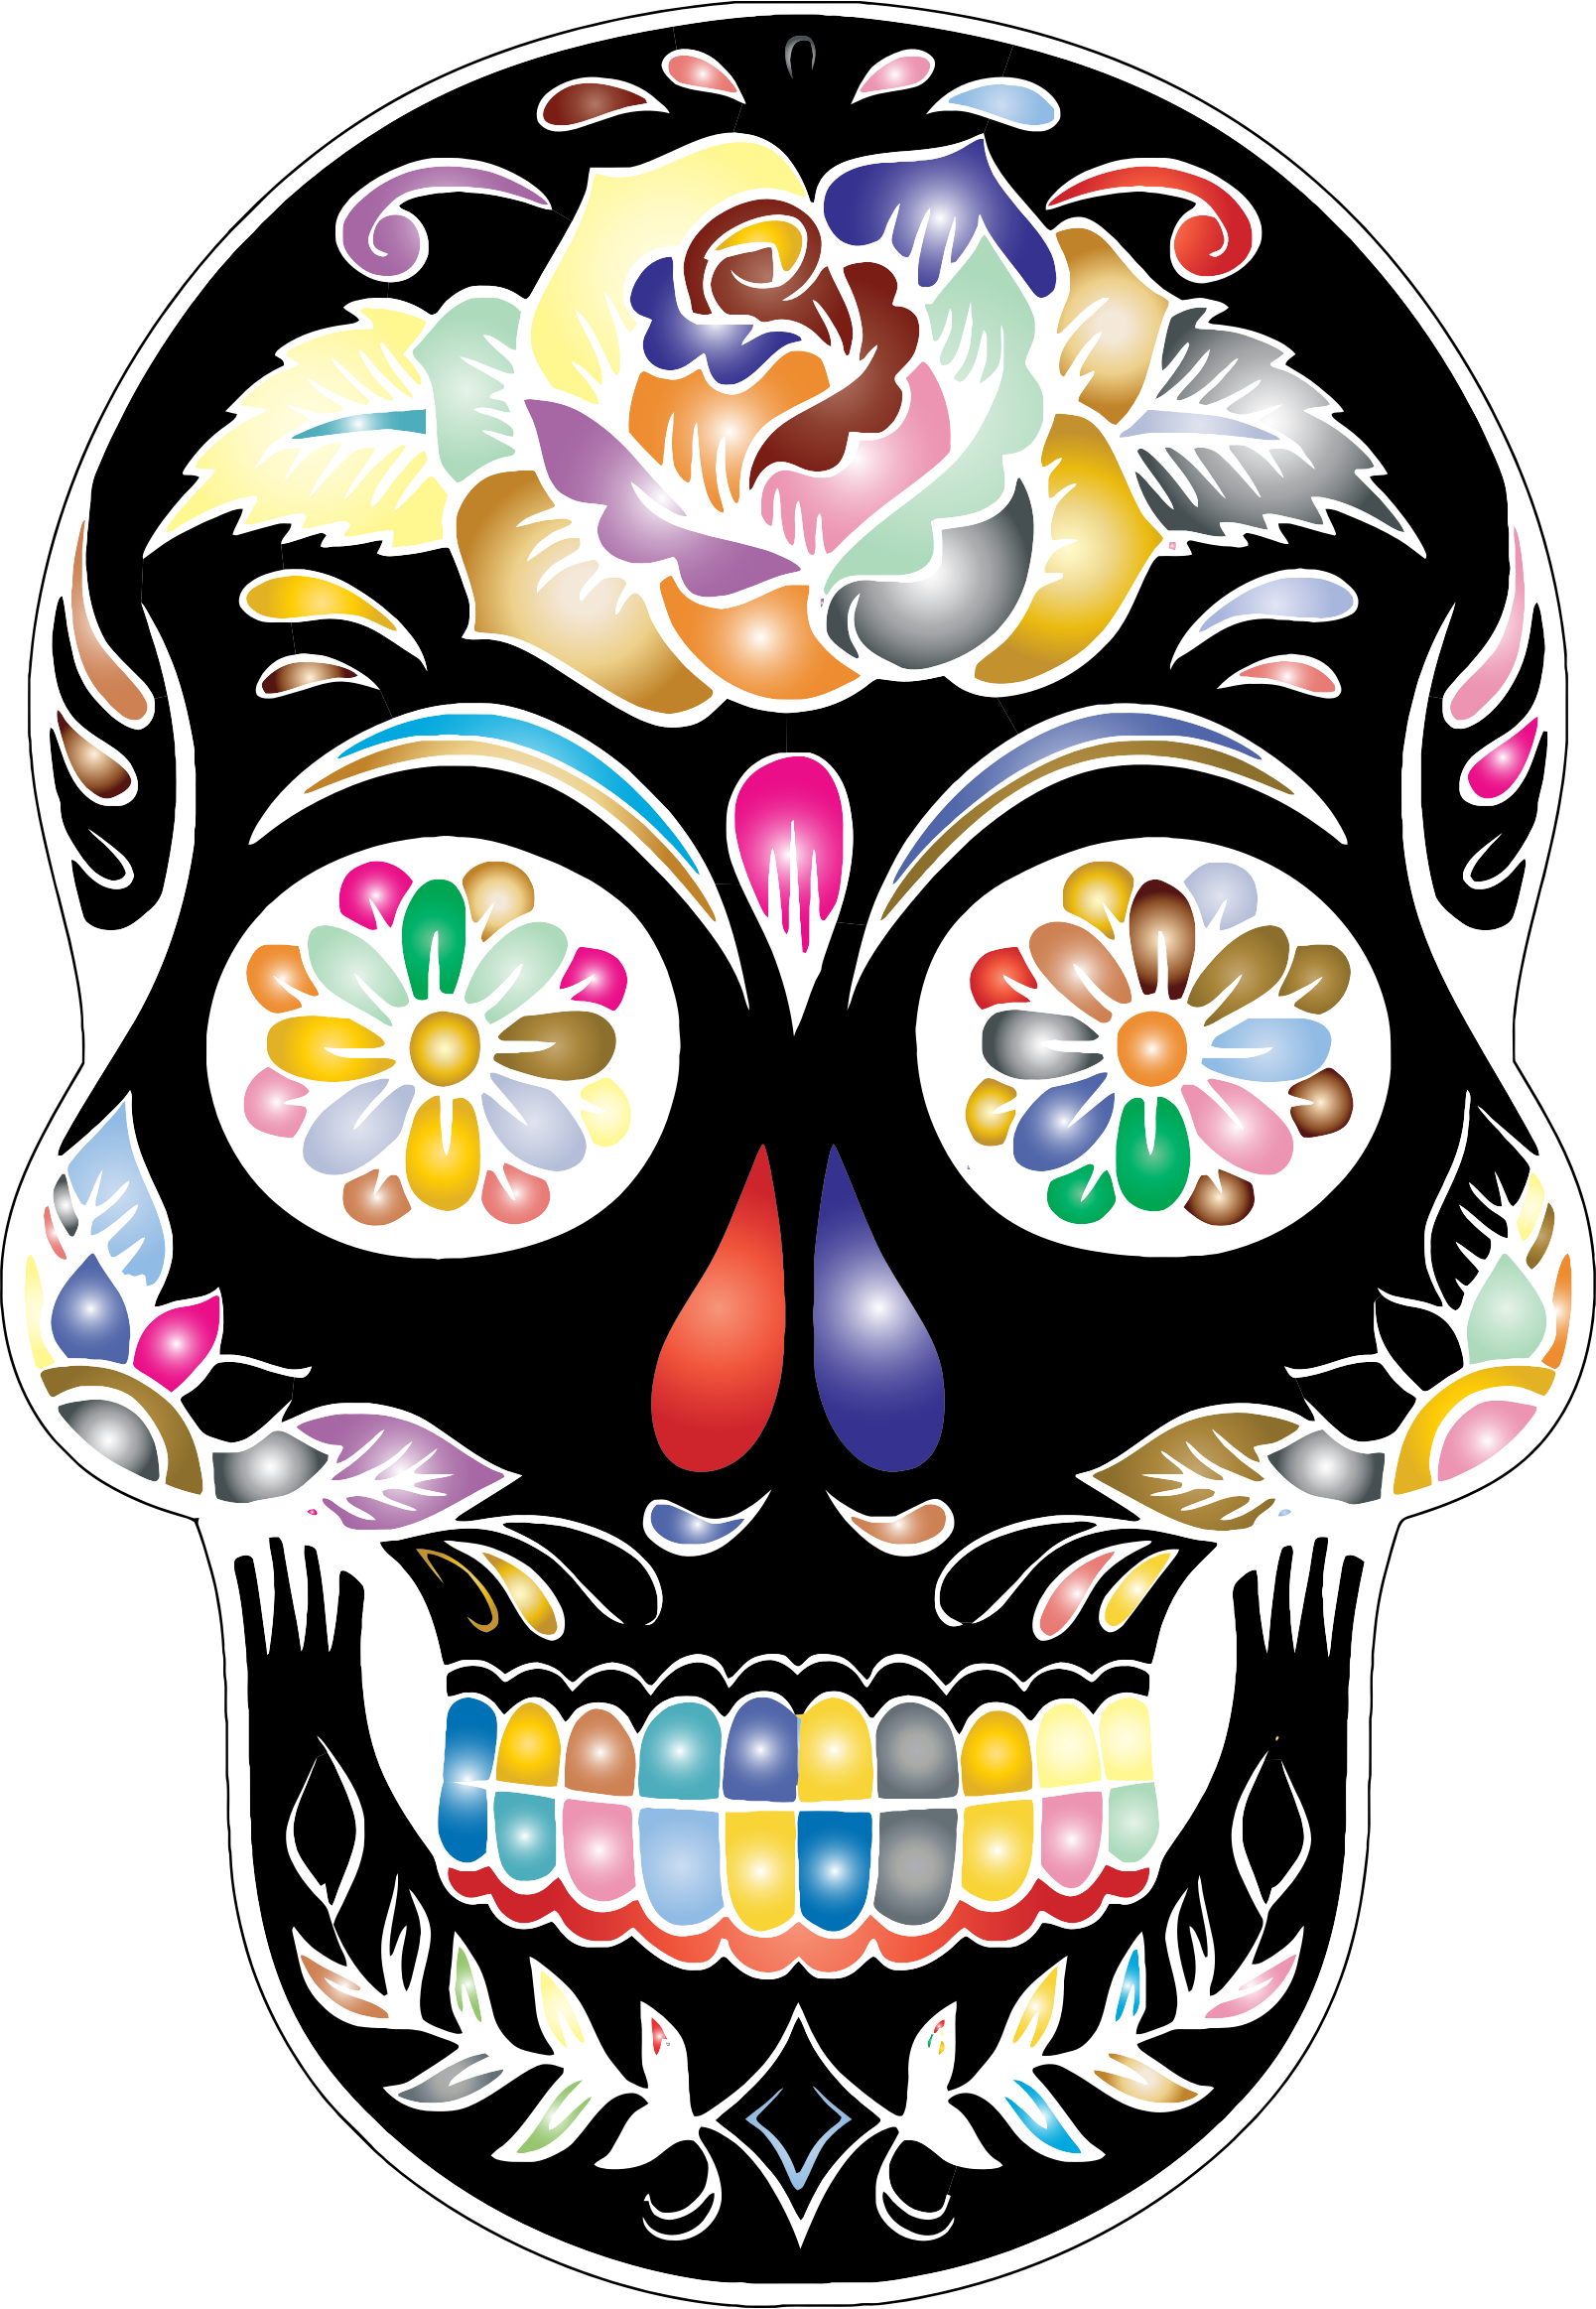 Download And Share Clipart About Sugar Skull Silhouette By Karen Arnold Skull Silhouette Find More High Quality Fre Candy Skulls Sugar Skull Diy Sugar Skull